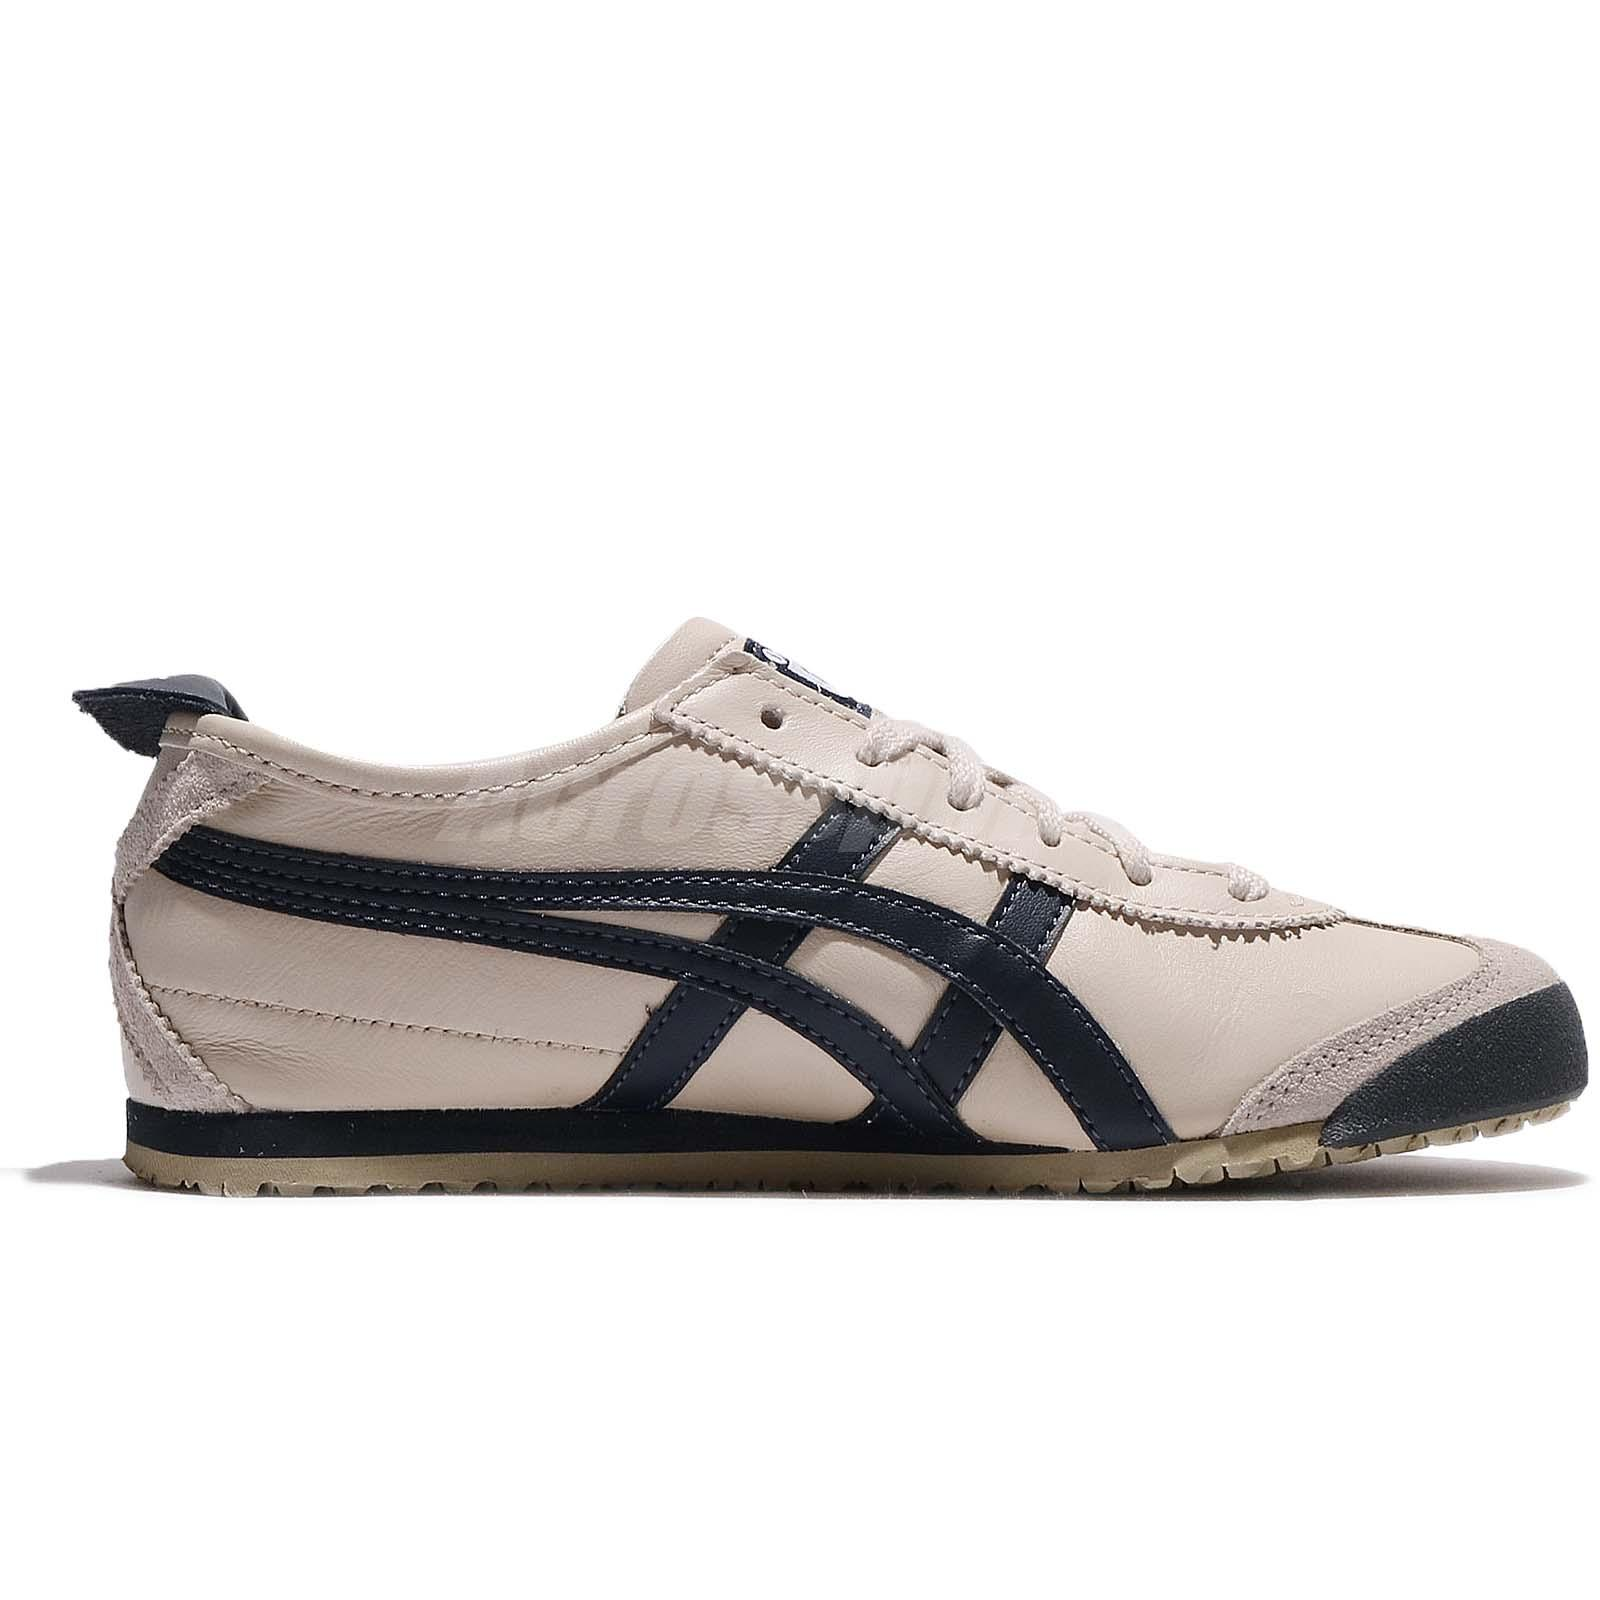 MensWomens Asics Onitsuka Tiger Mexico Mid Runner Shoes BeigeDark Blue Thl3281208 New Style